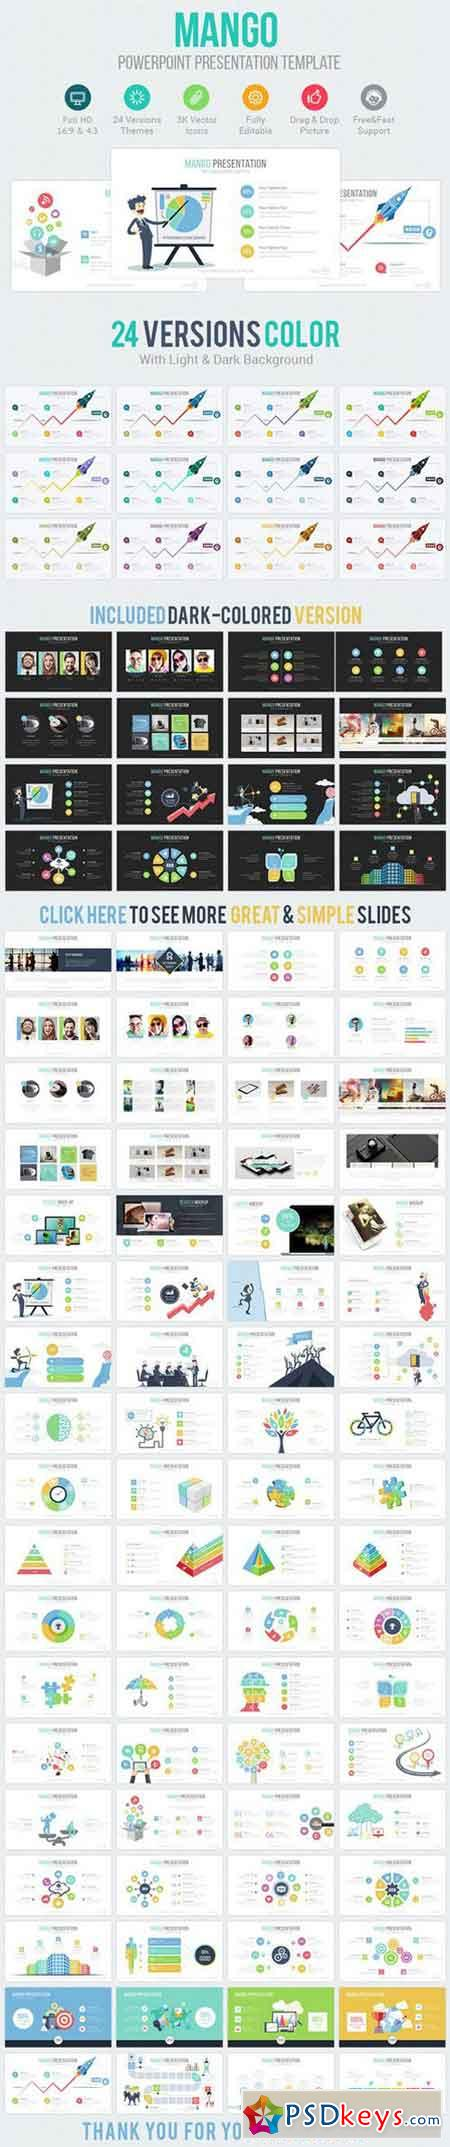 Mango Powerpoint Template 705164